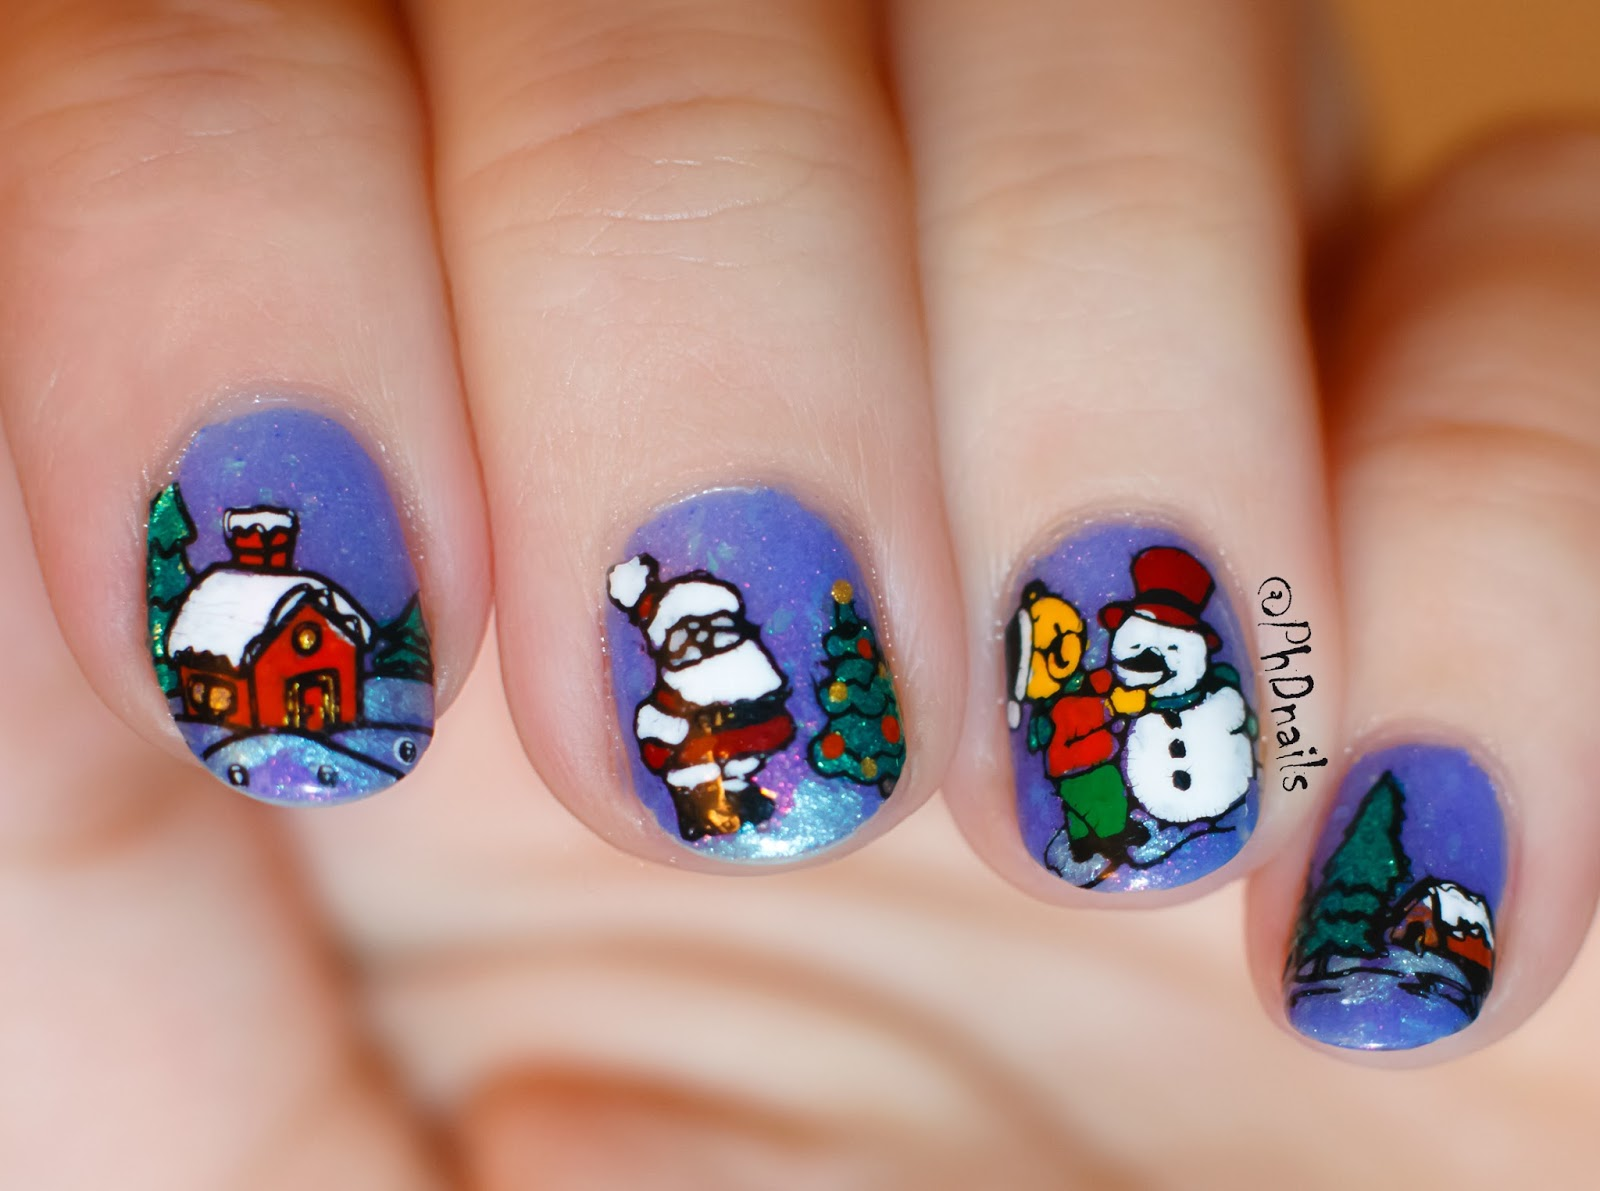 PhD nails: Challenge your nail art: stamping decals nail art with ...